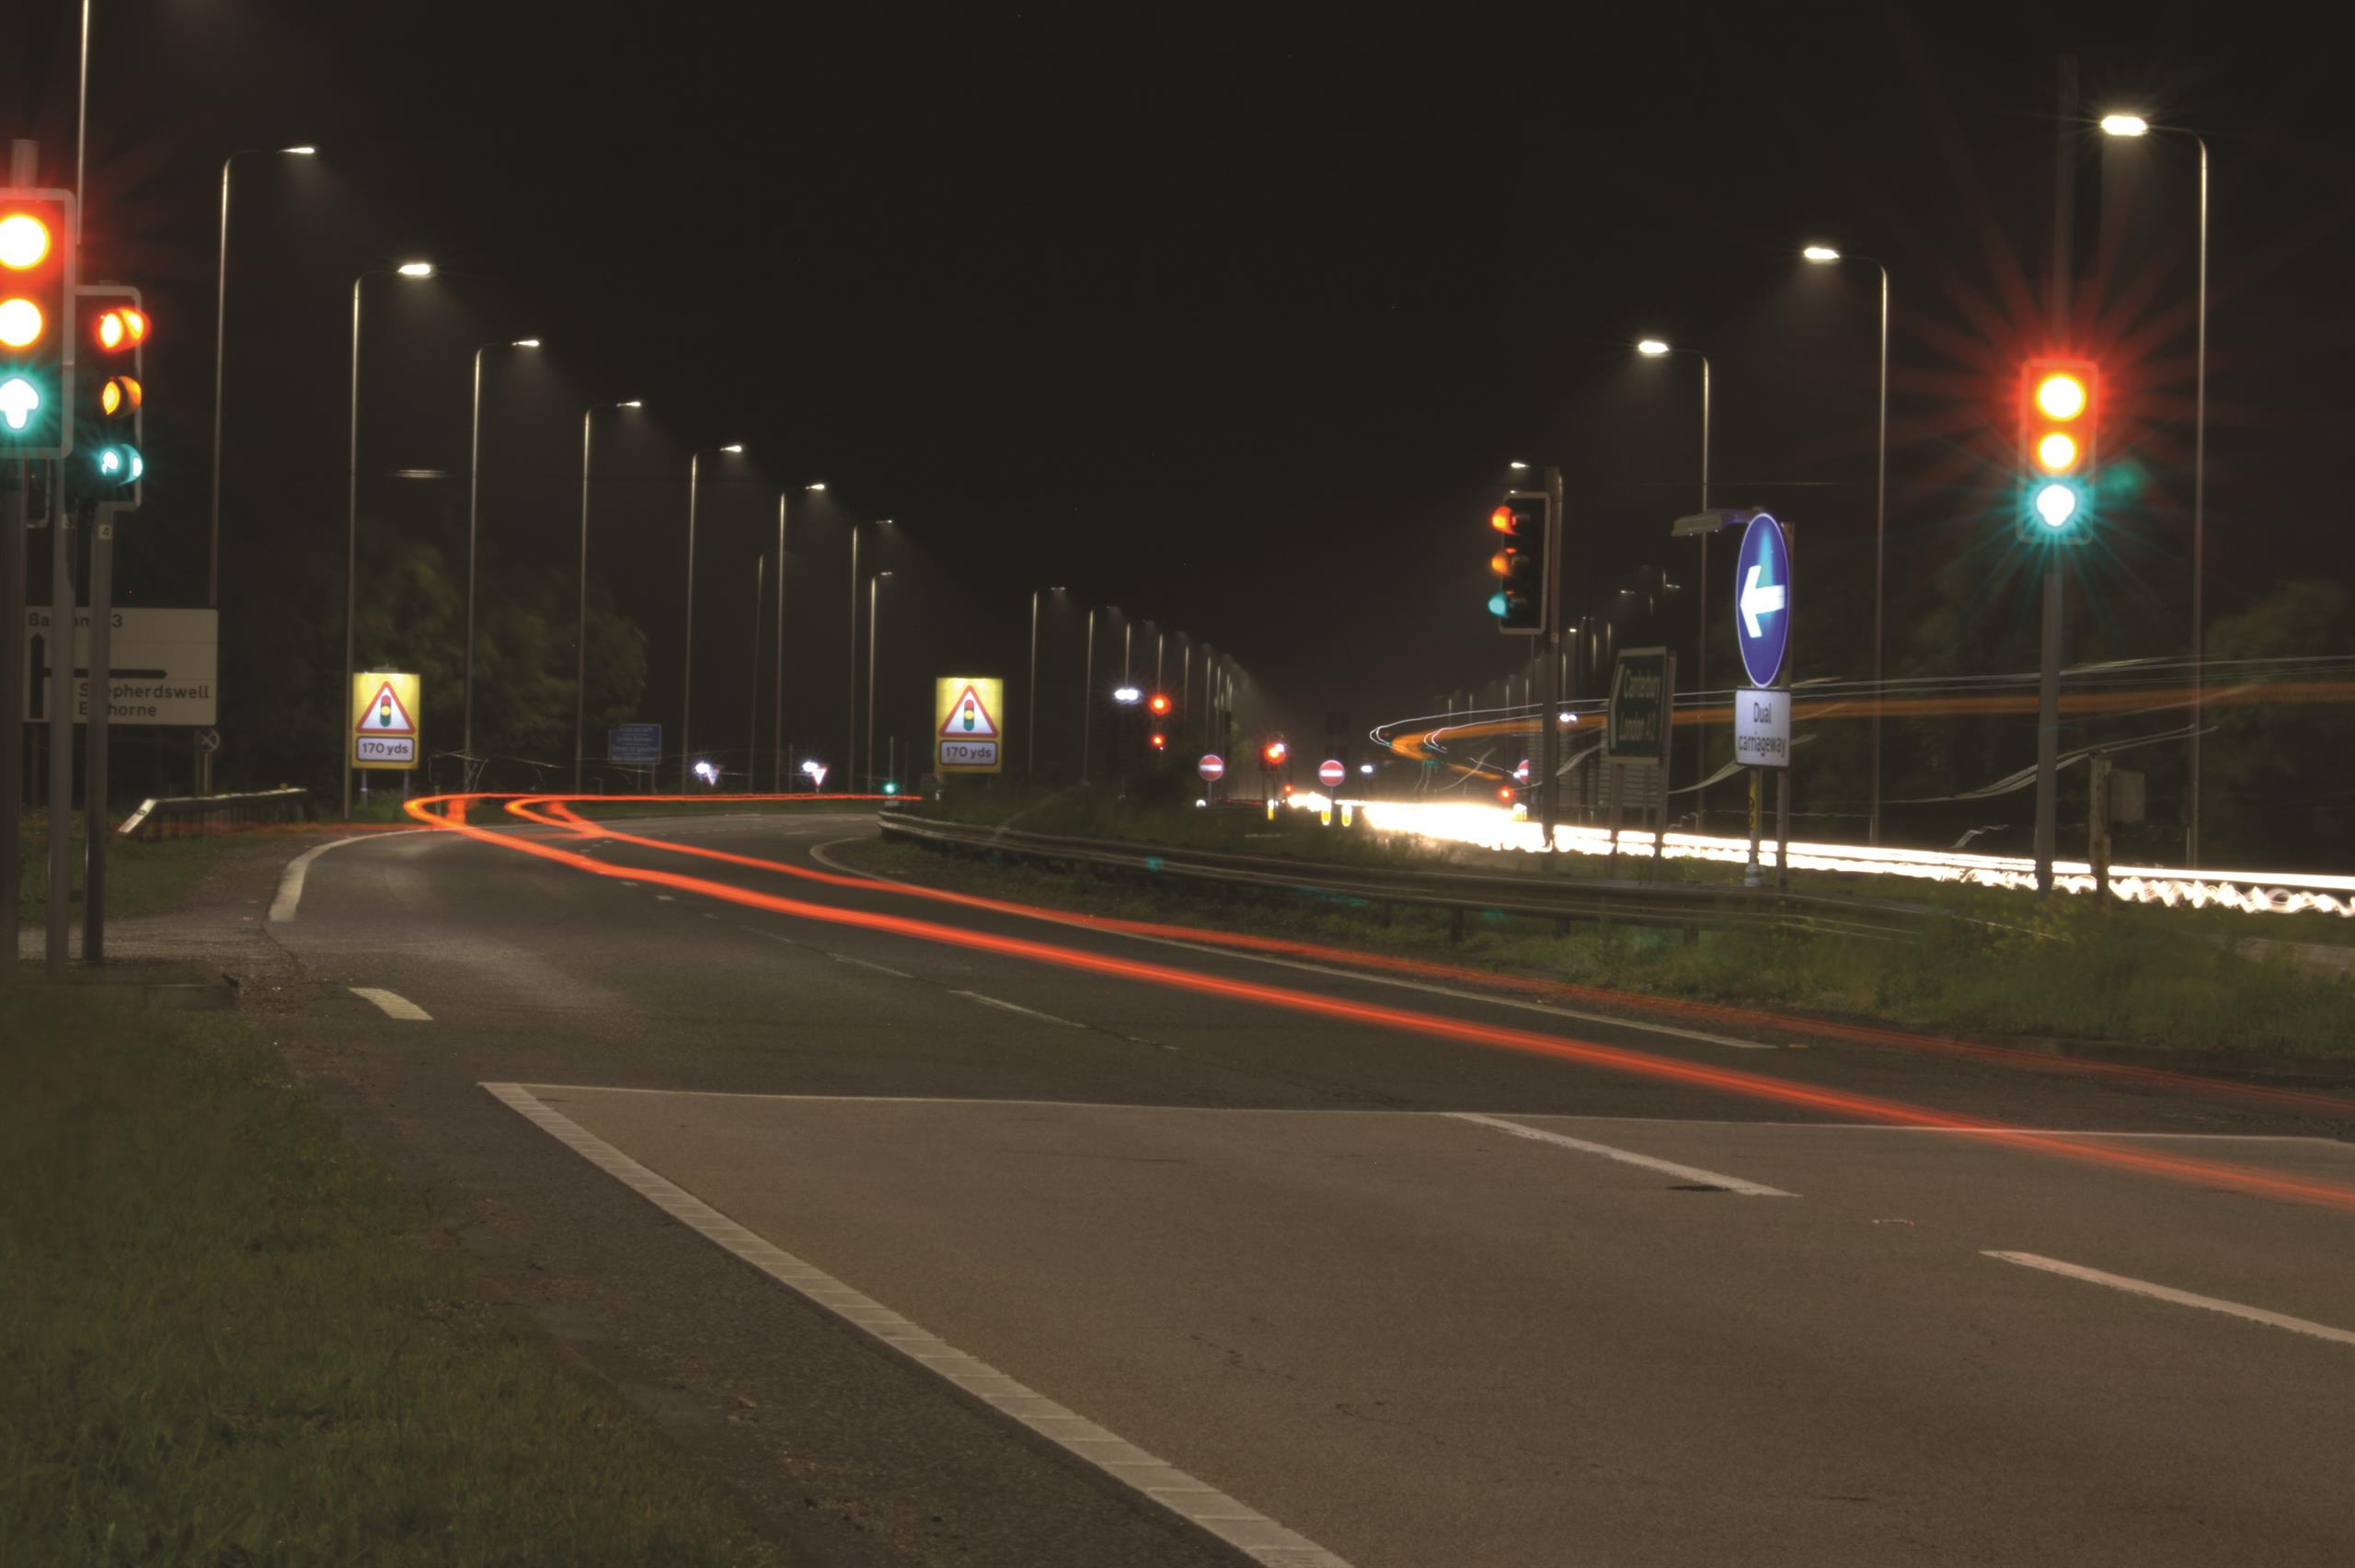 A route lit up on the highway at night